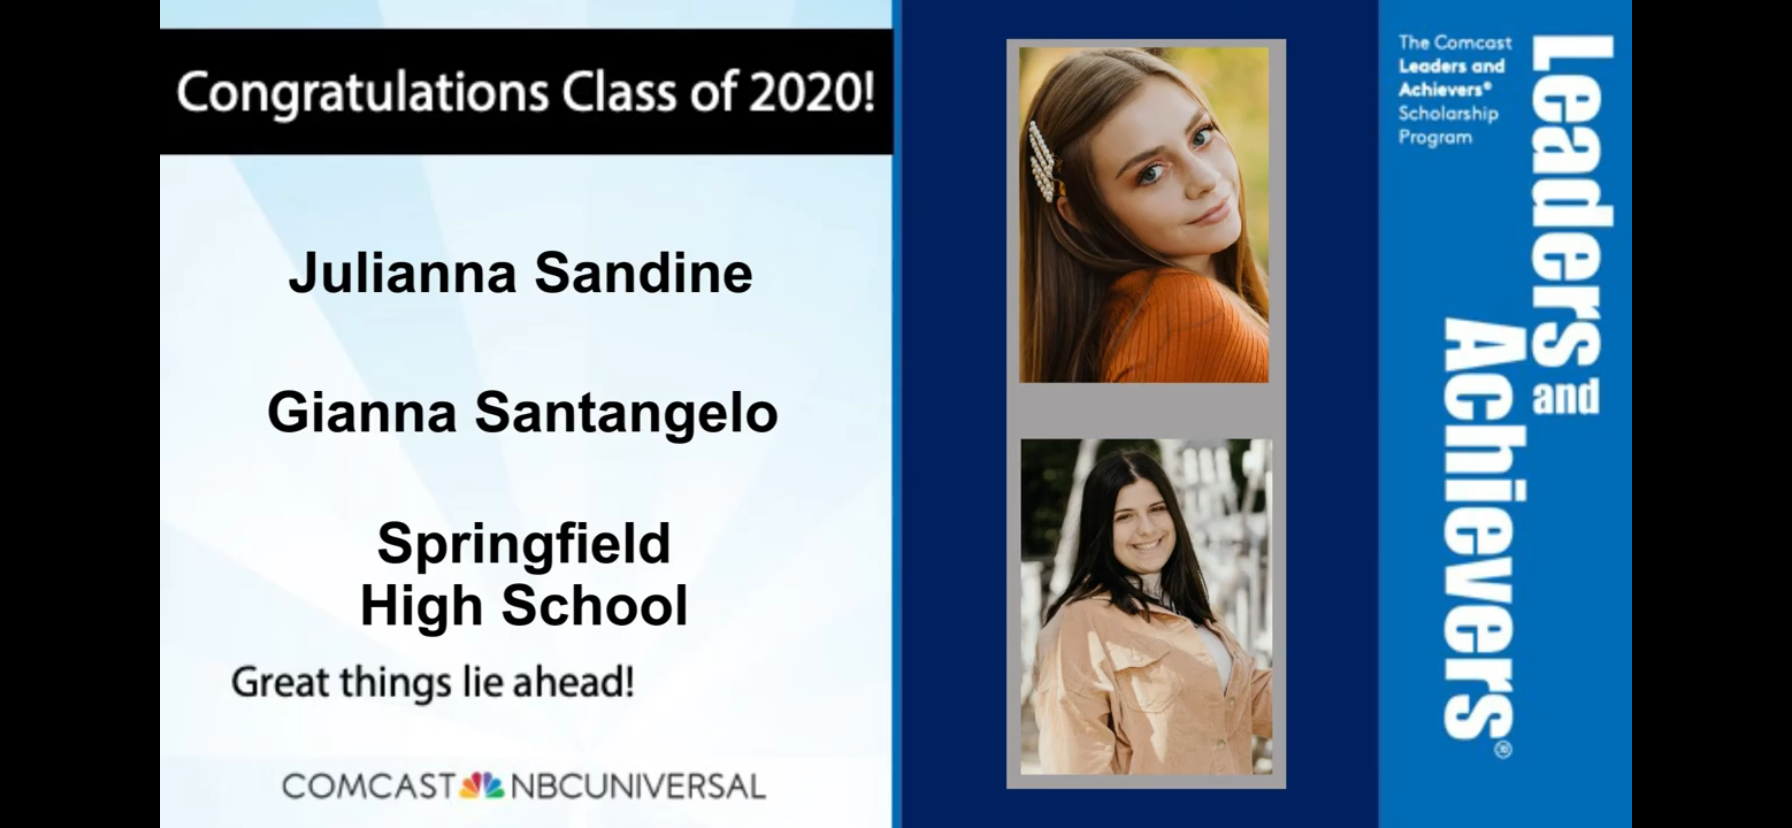 Class of 2020 Scholarship awarded to Julianna Sandine and Gianna Santangelo